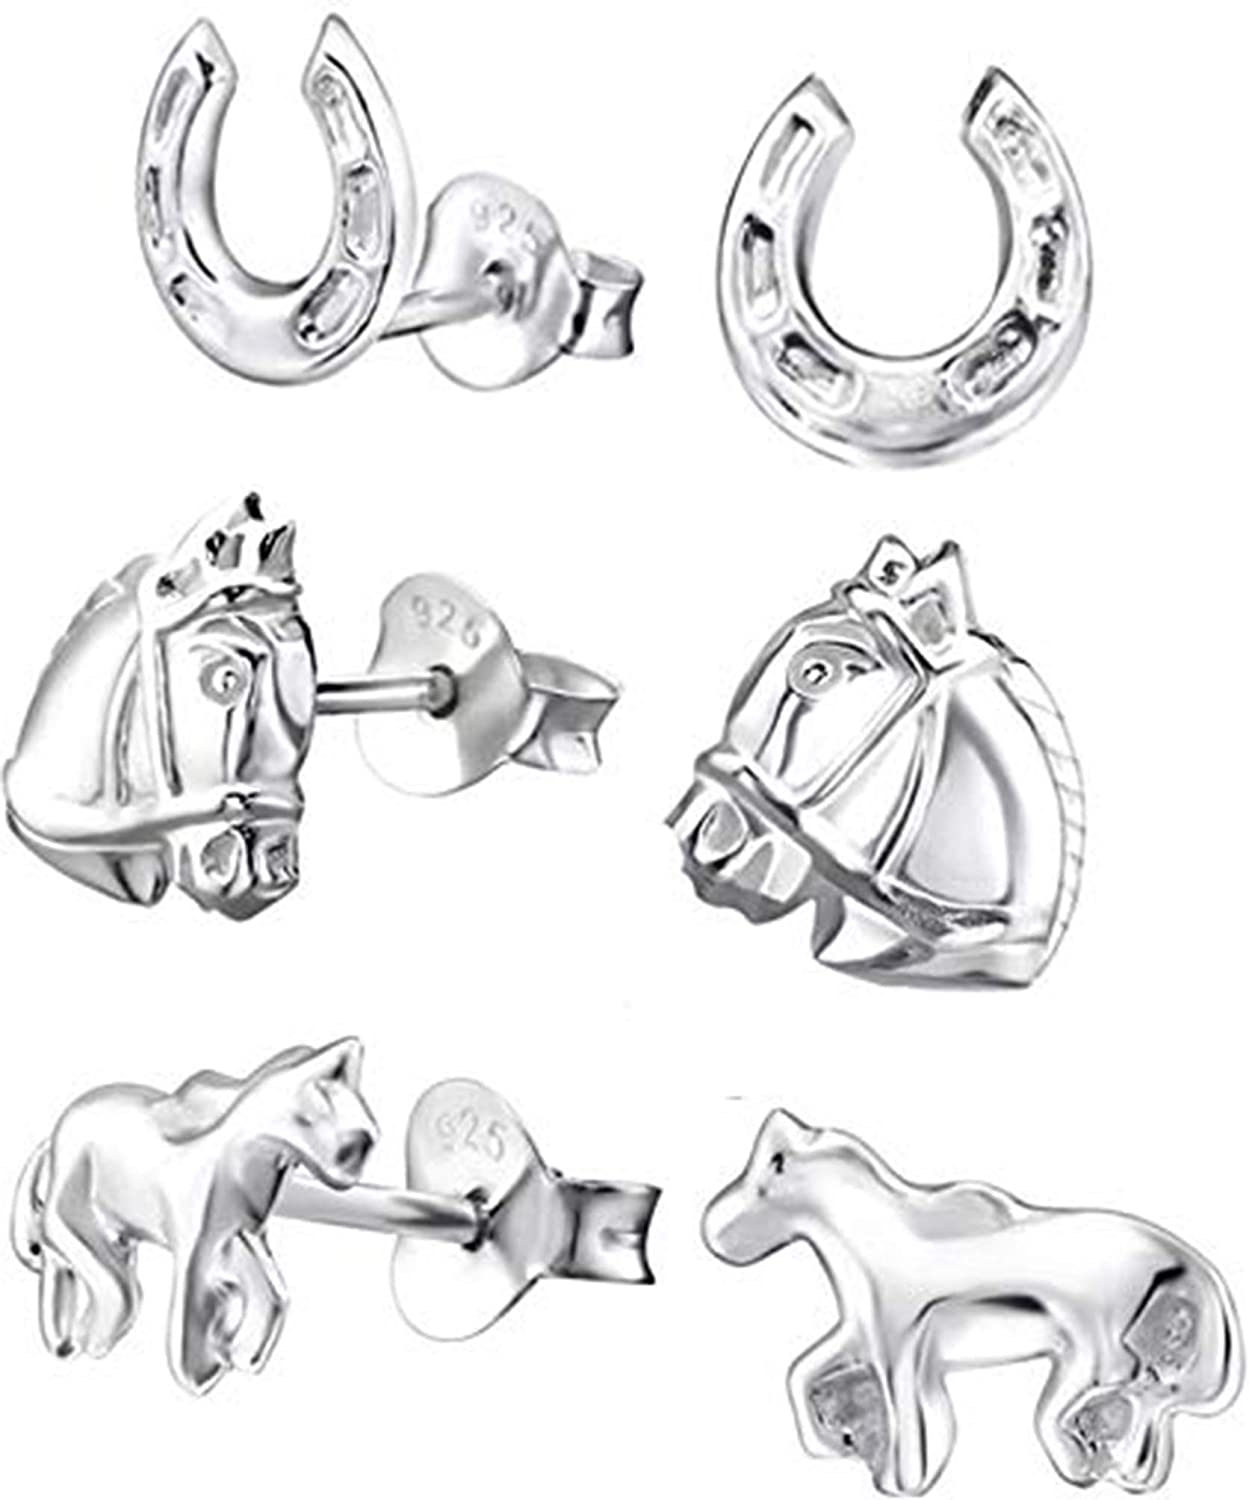 KIWI DAISY Hypoallergenic Fashion Sterling Silver Earring Set Complete Free Shipping Horse Stud